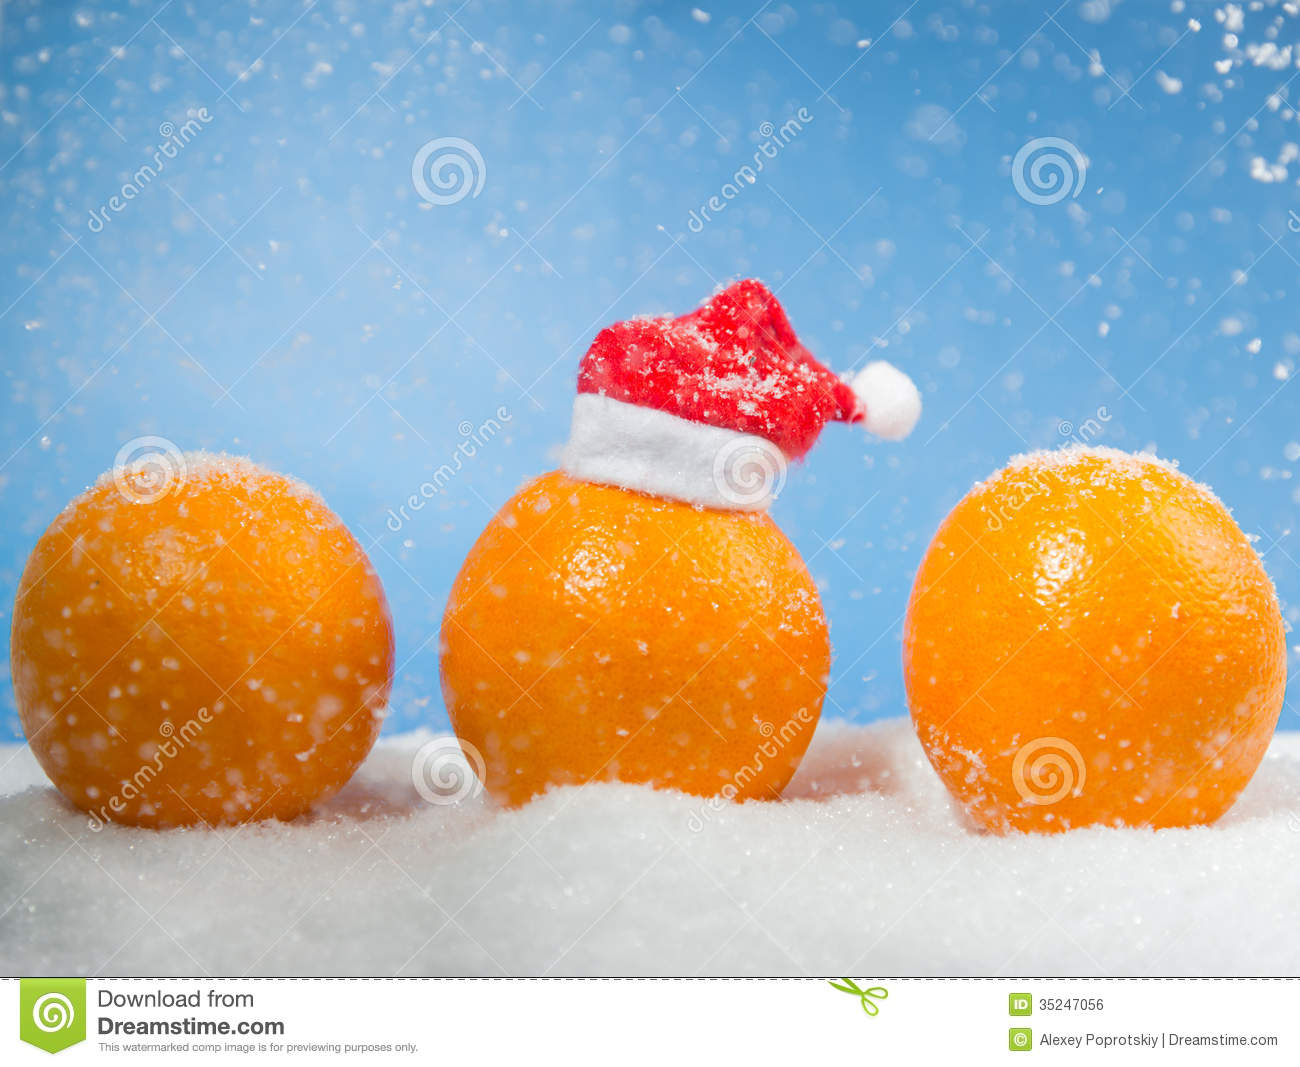 three christmas oranges - Christmas Oranges